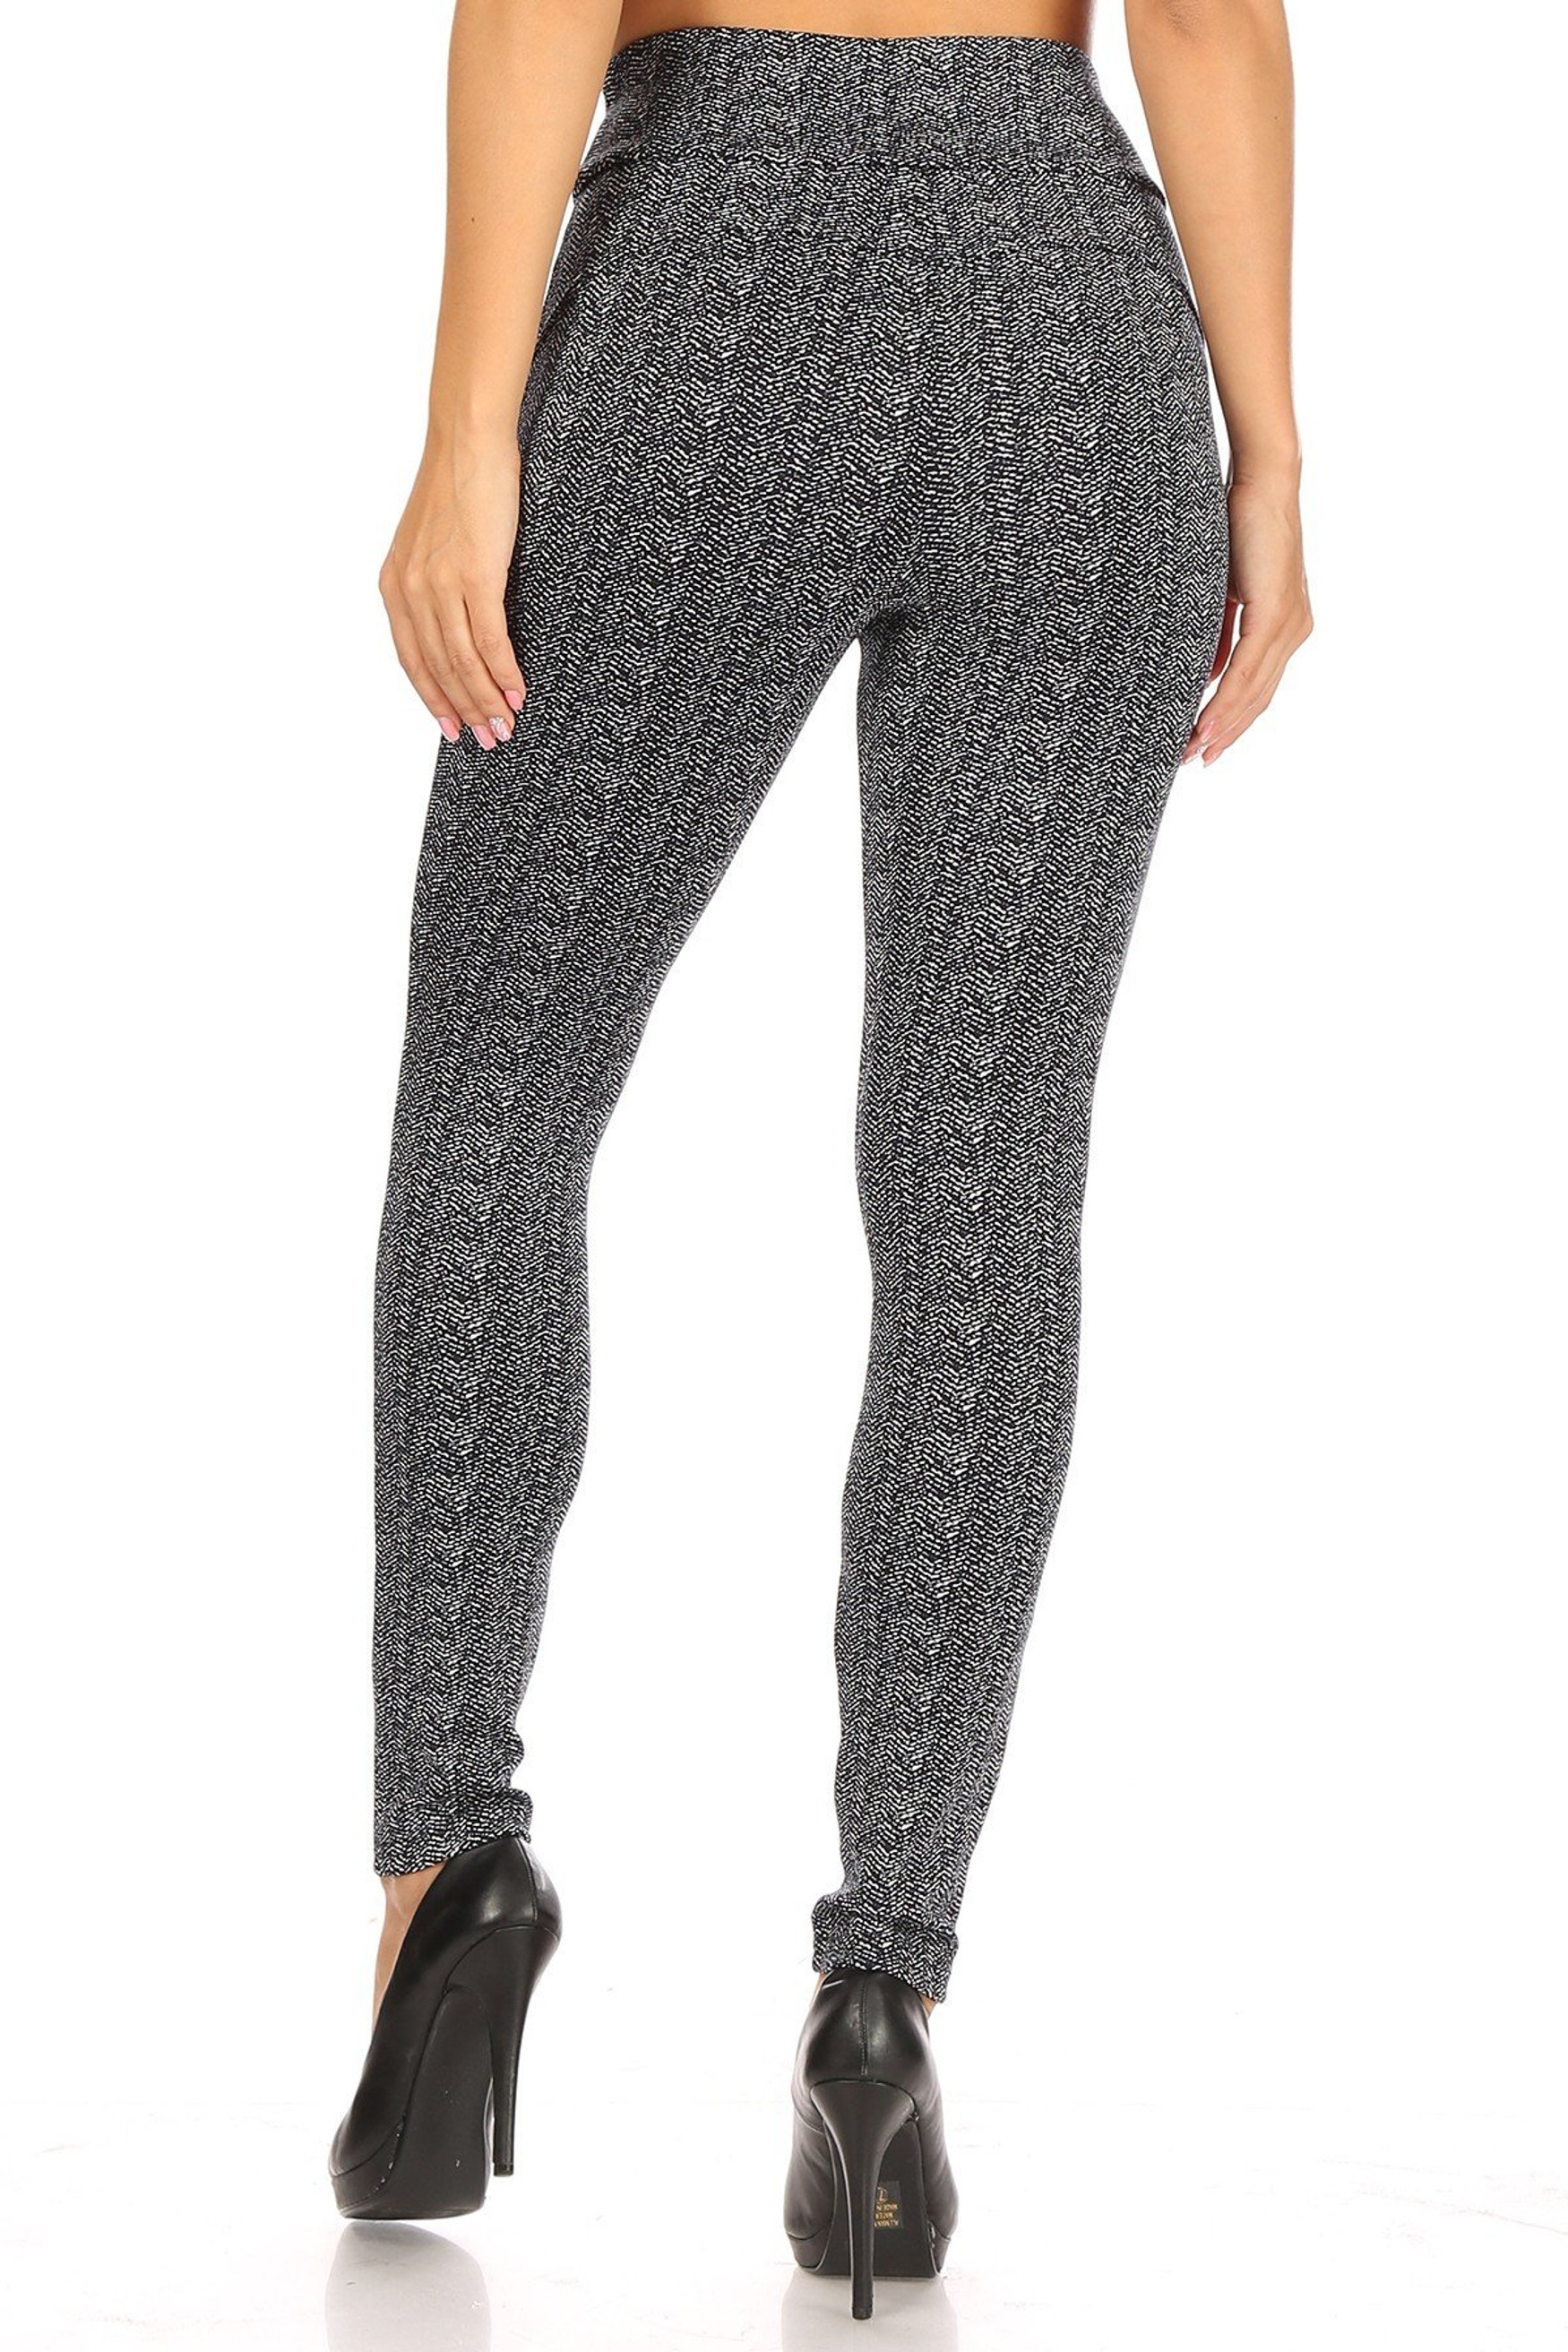 Crackled Zigzag High Waisted Body Sculpting Treggings with Pockets